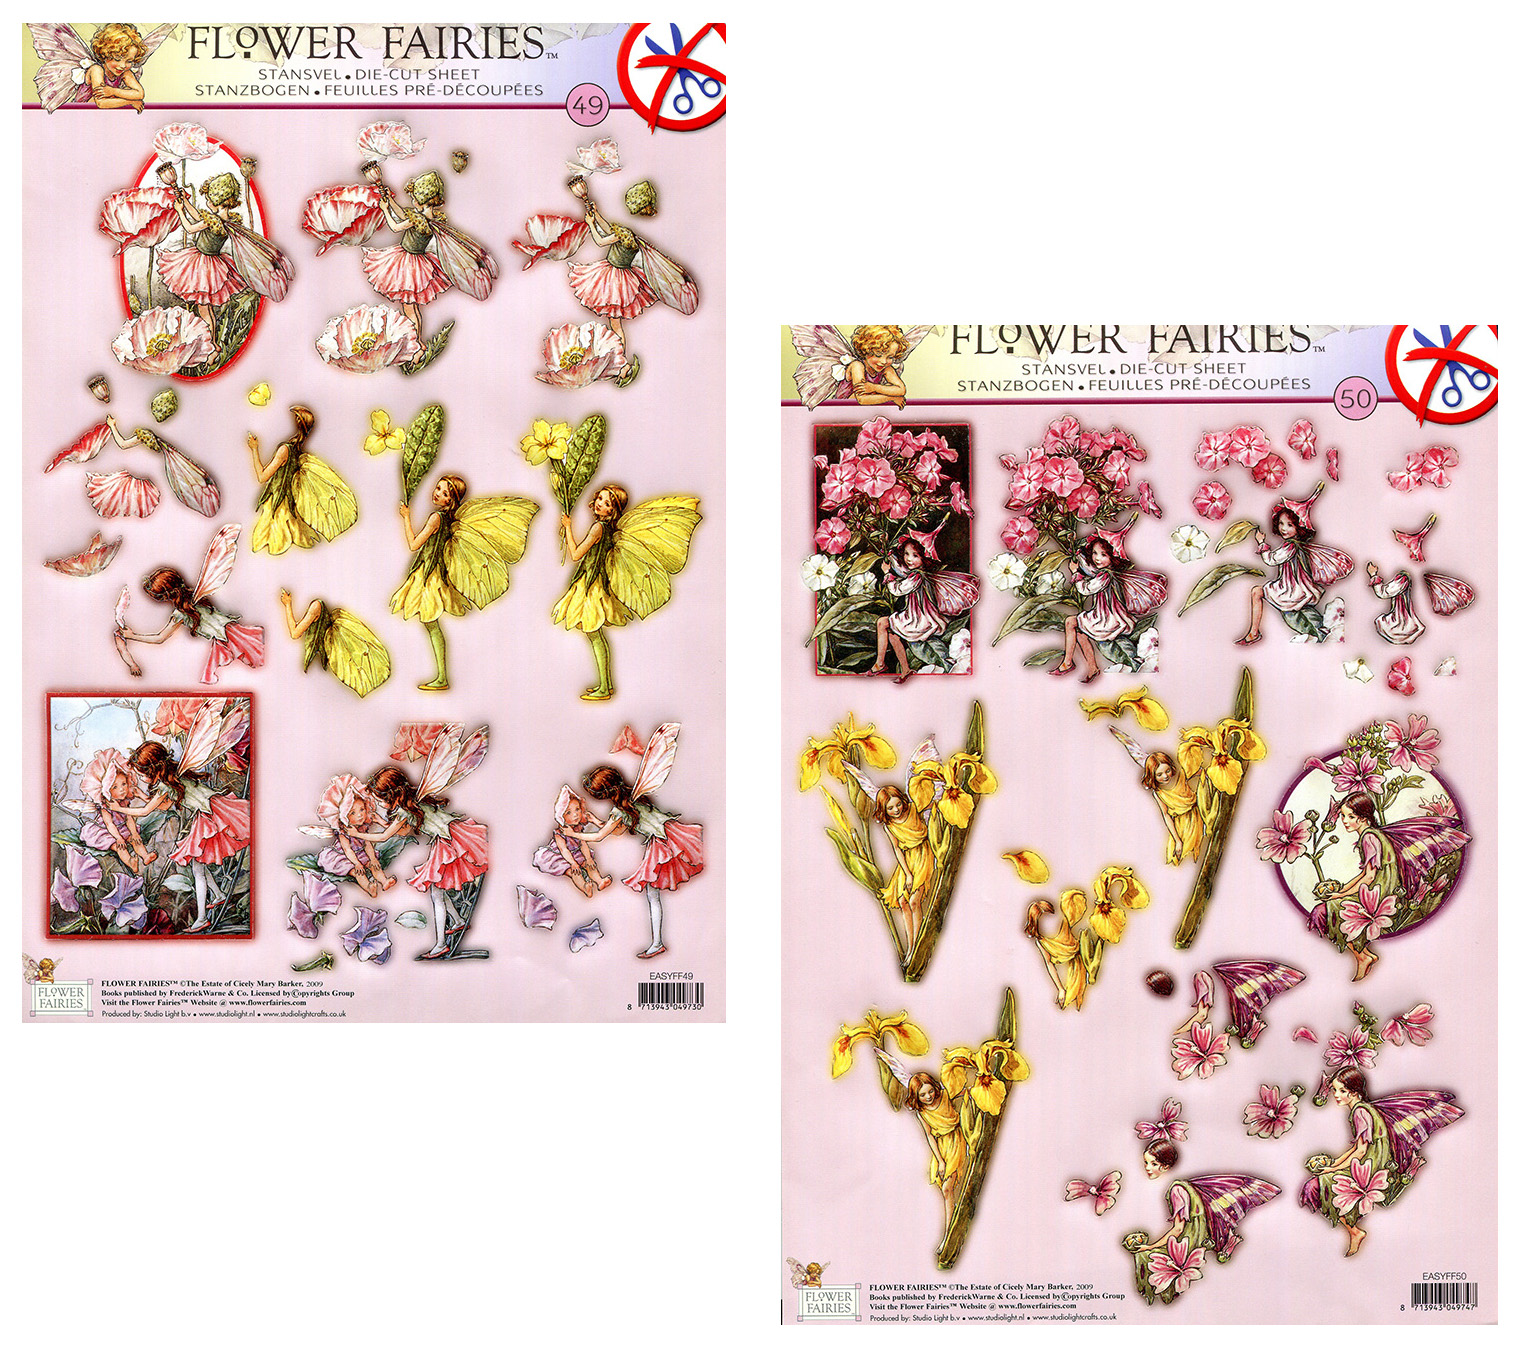 Die Cut A4 Decoupage Sheets - Flower Fairies #49 & #50